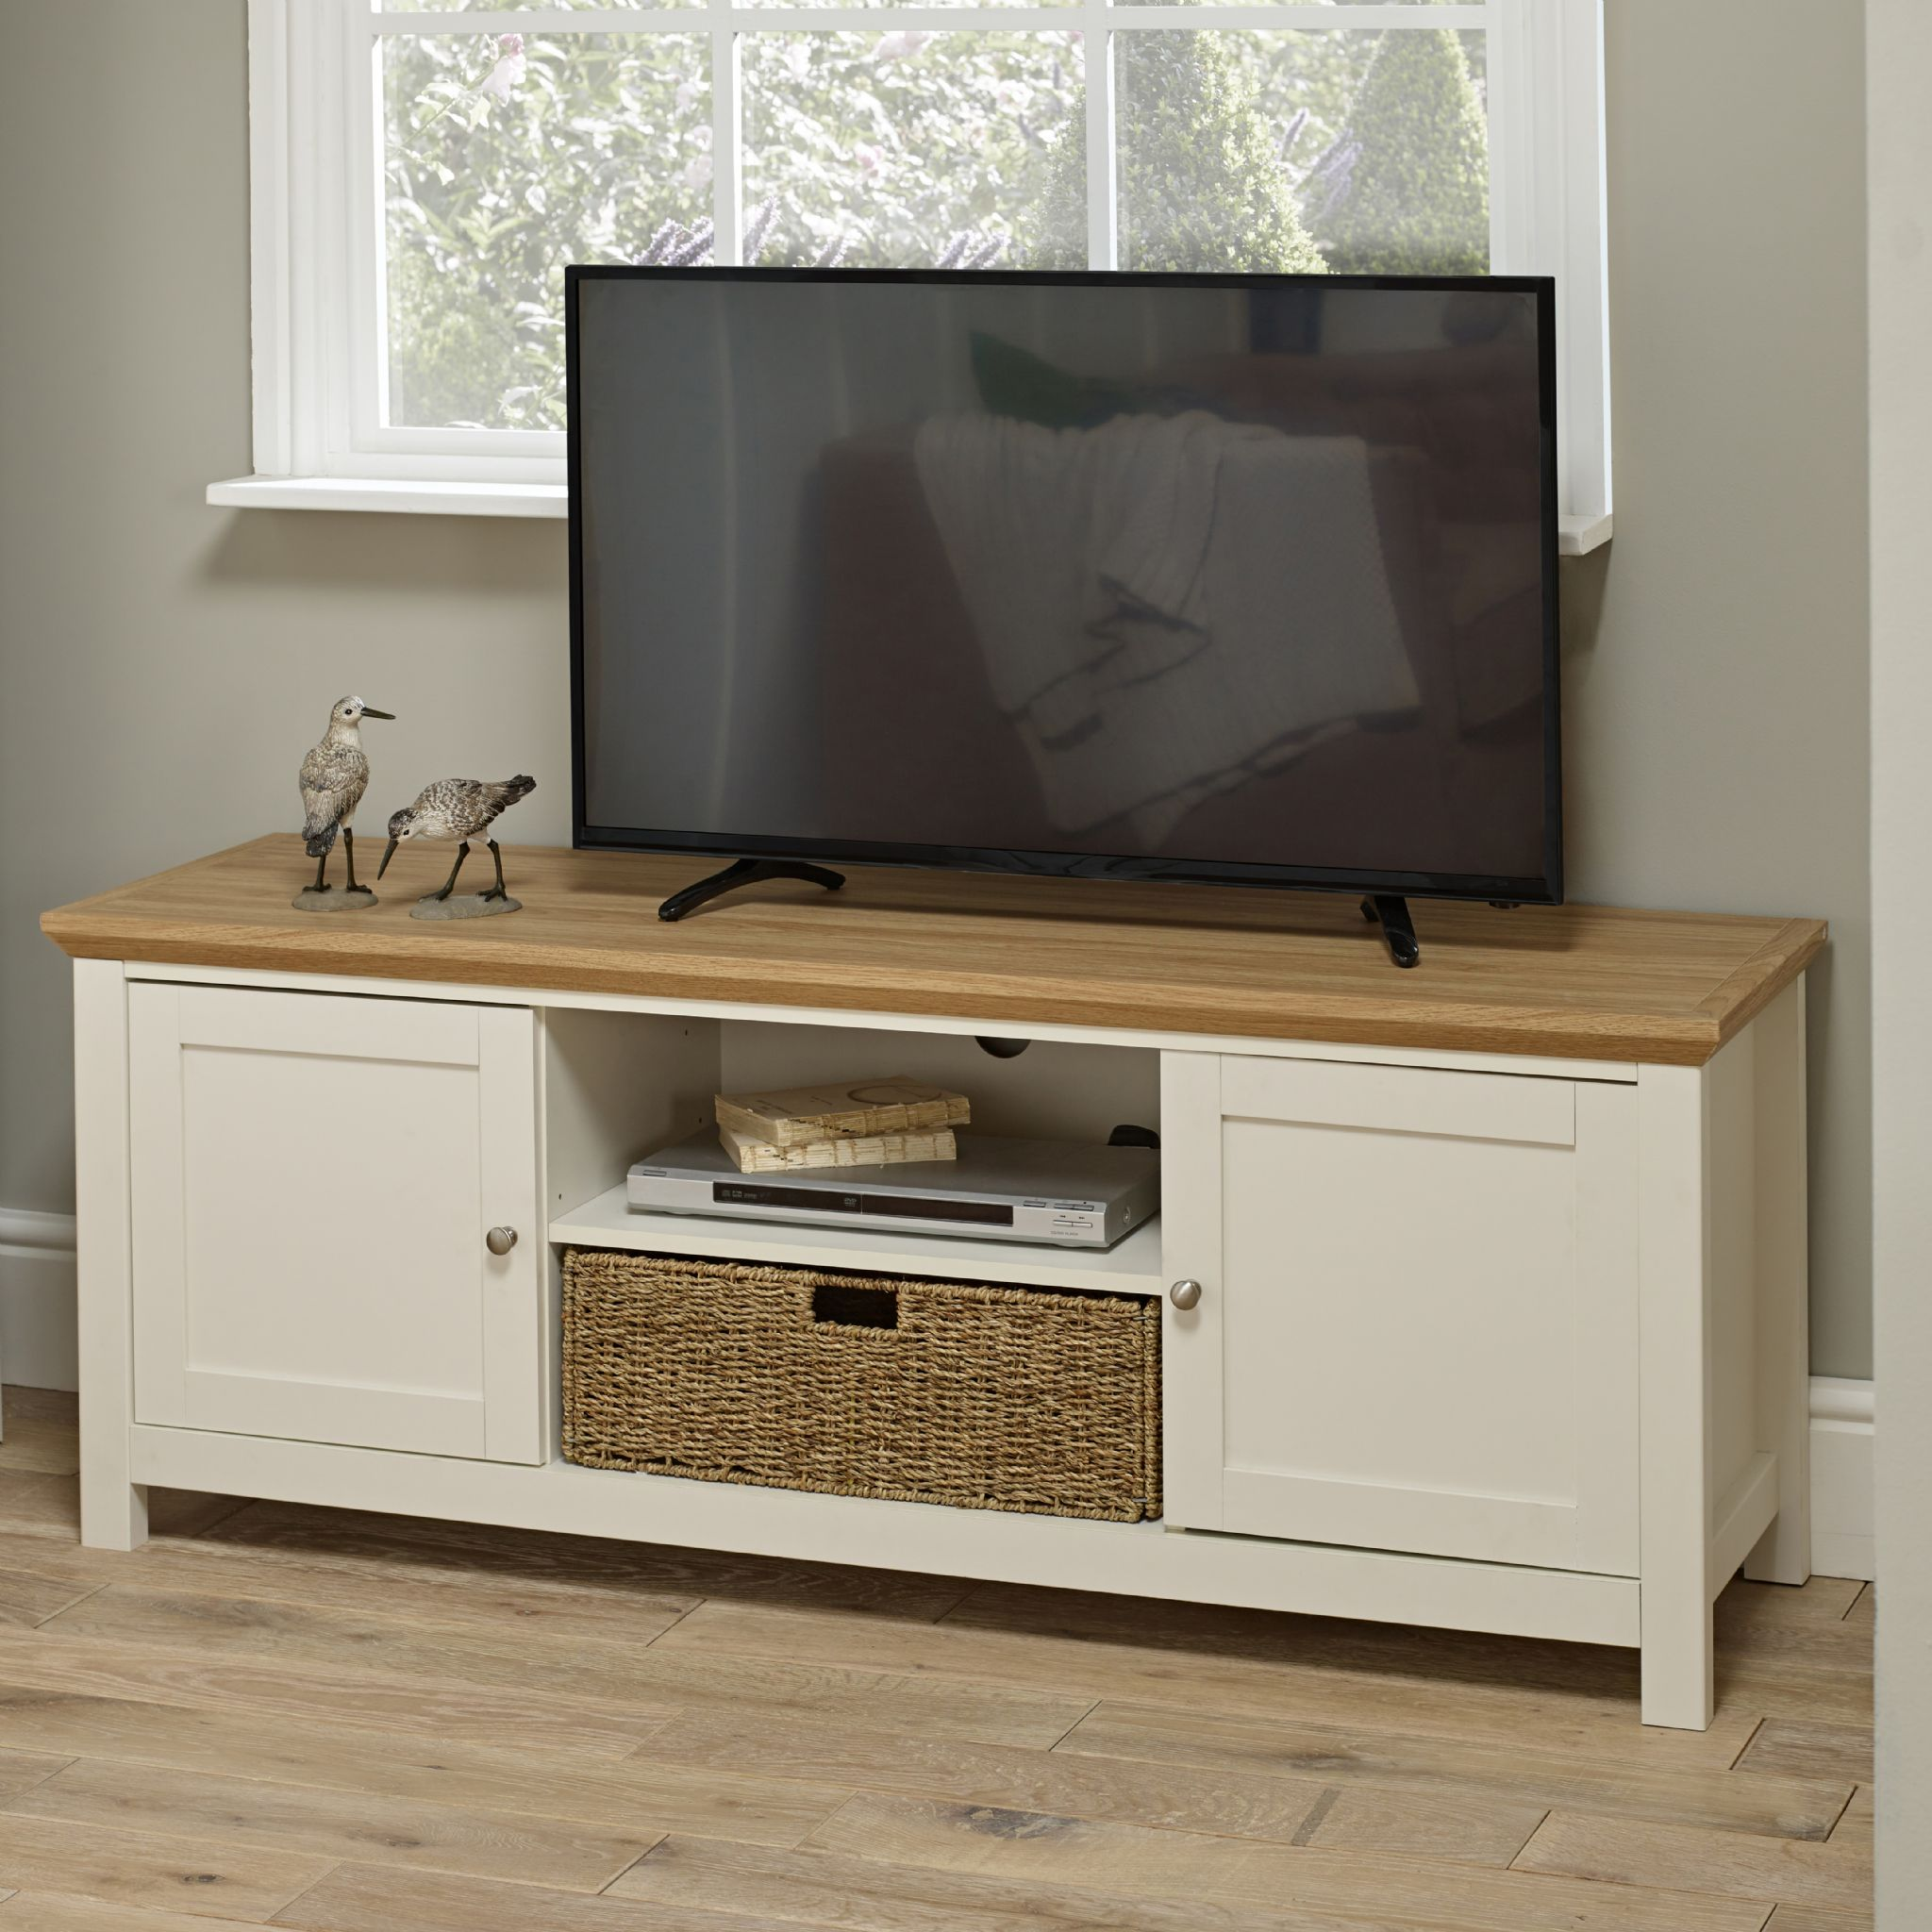 Off White Cream Oak Country Television Unit Tv Cabinet With Basket